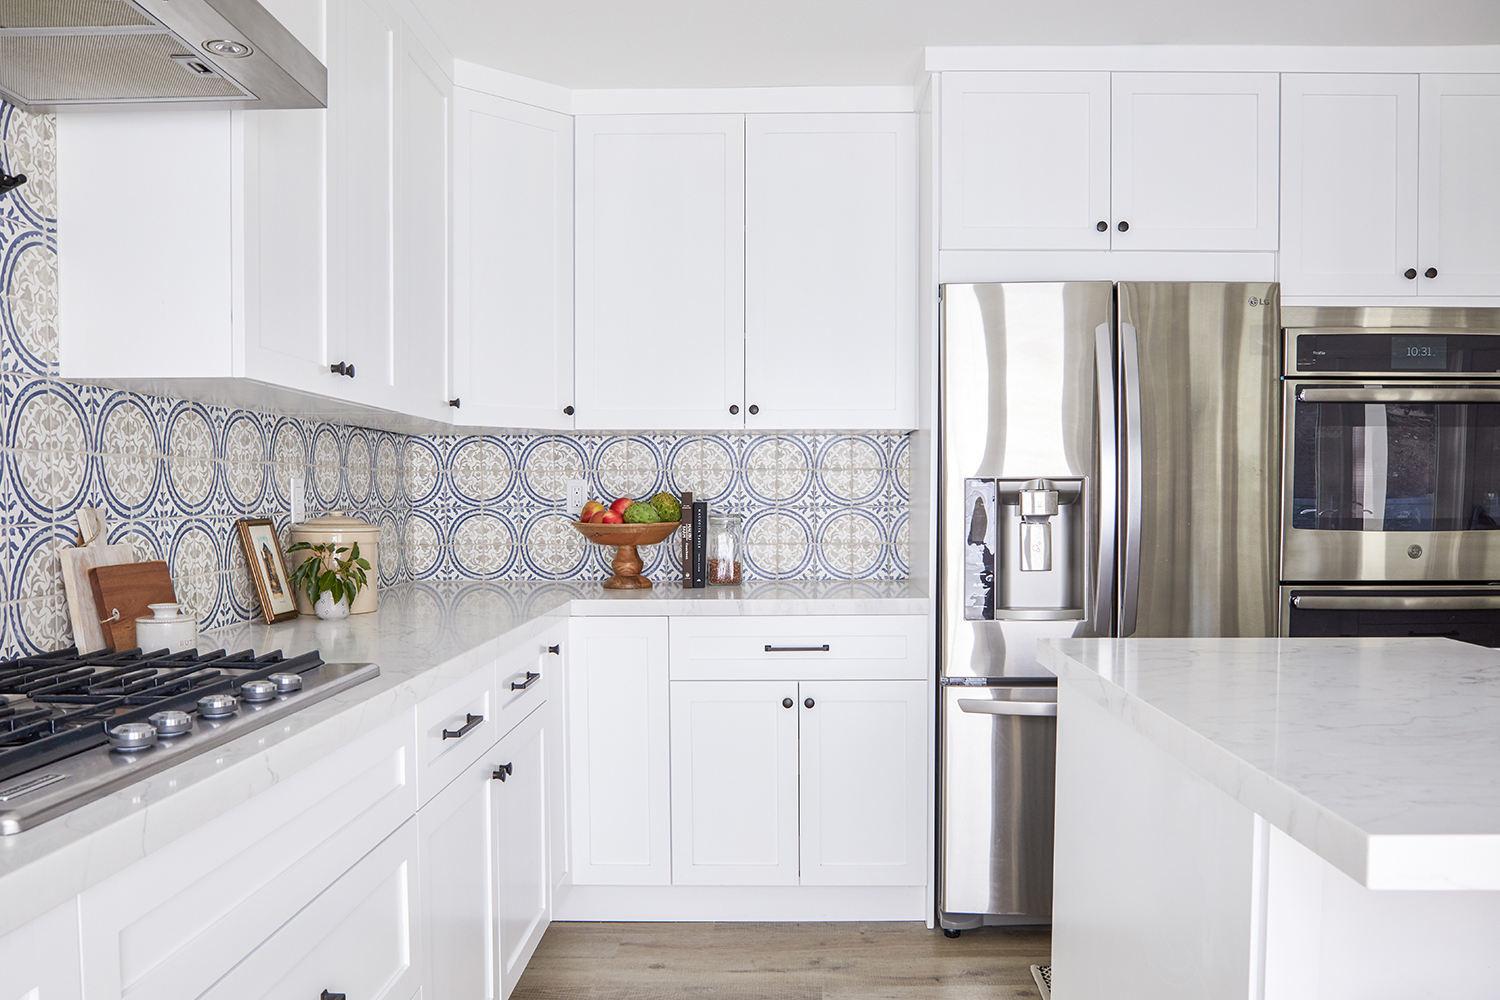 Modern Spanish kitchen interior design project by Sundling Studio located in California.